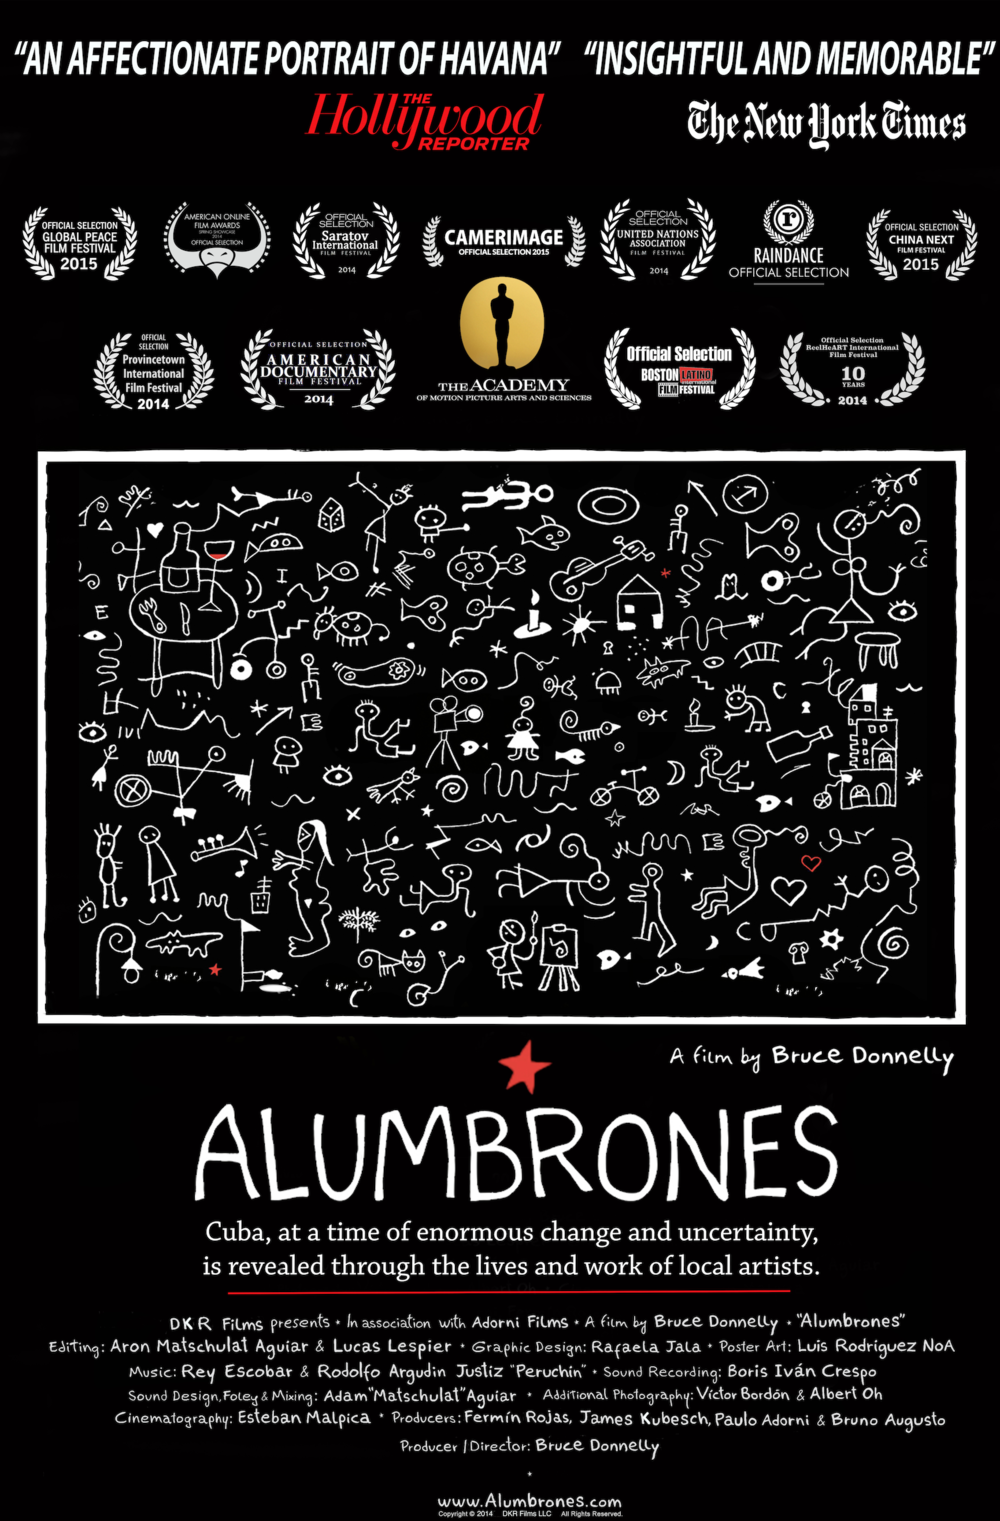 ALUMBRONES - DOCUMENTARY FEATURE